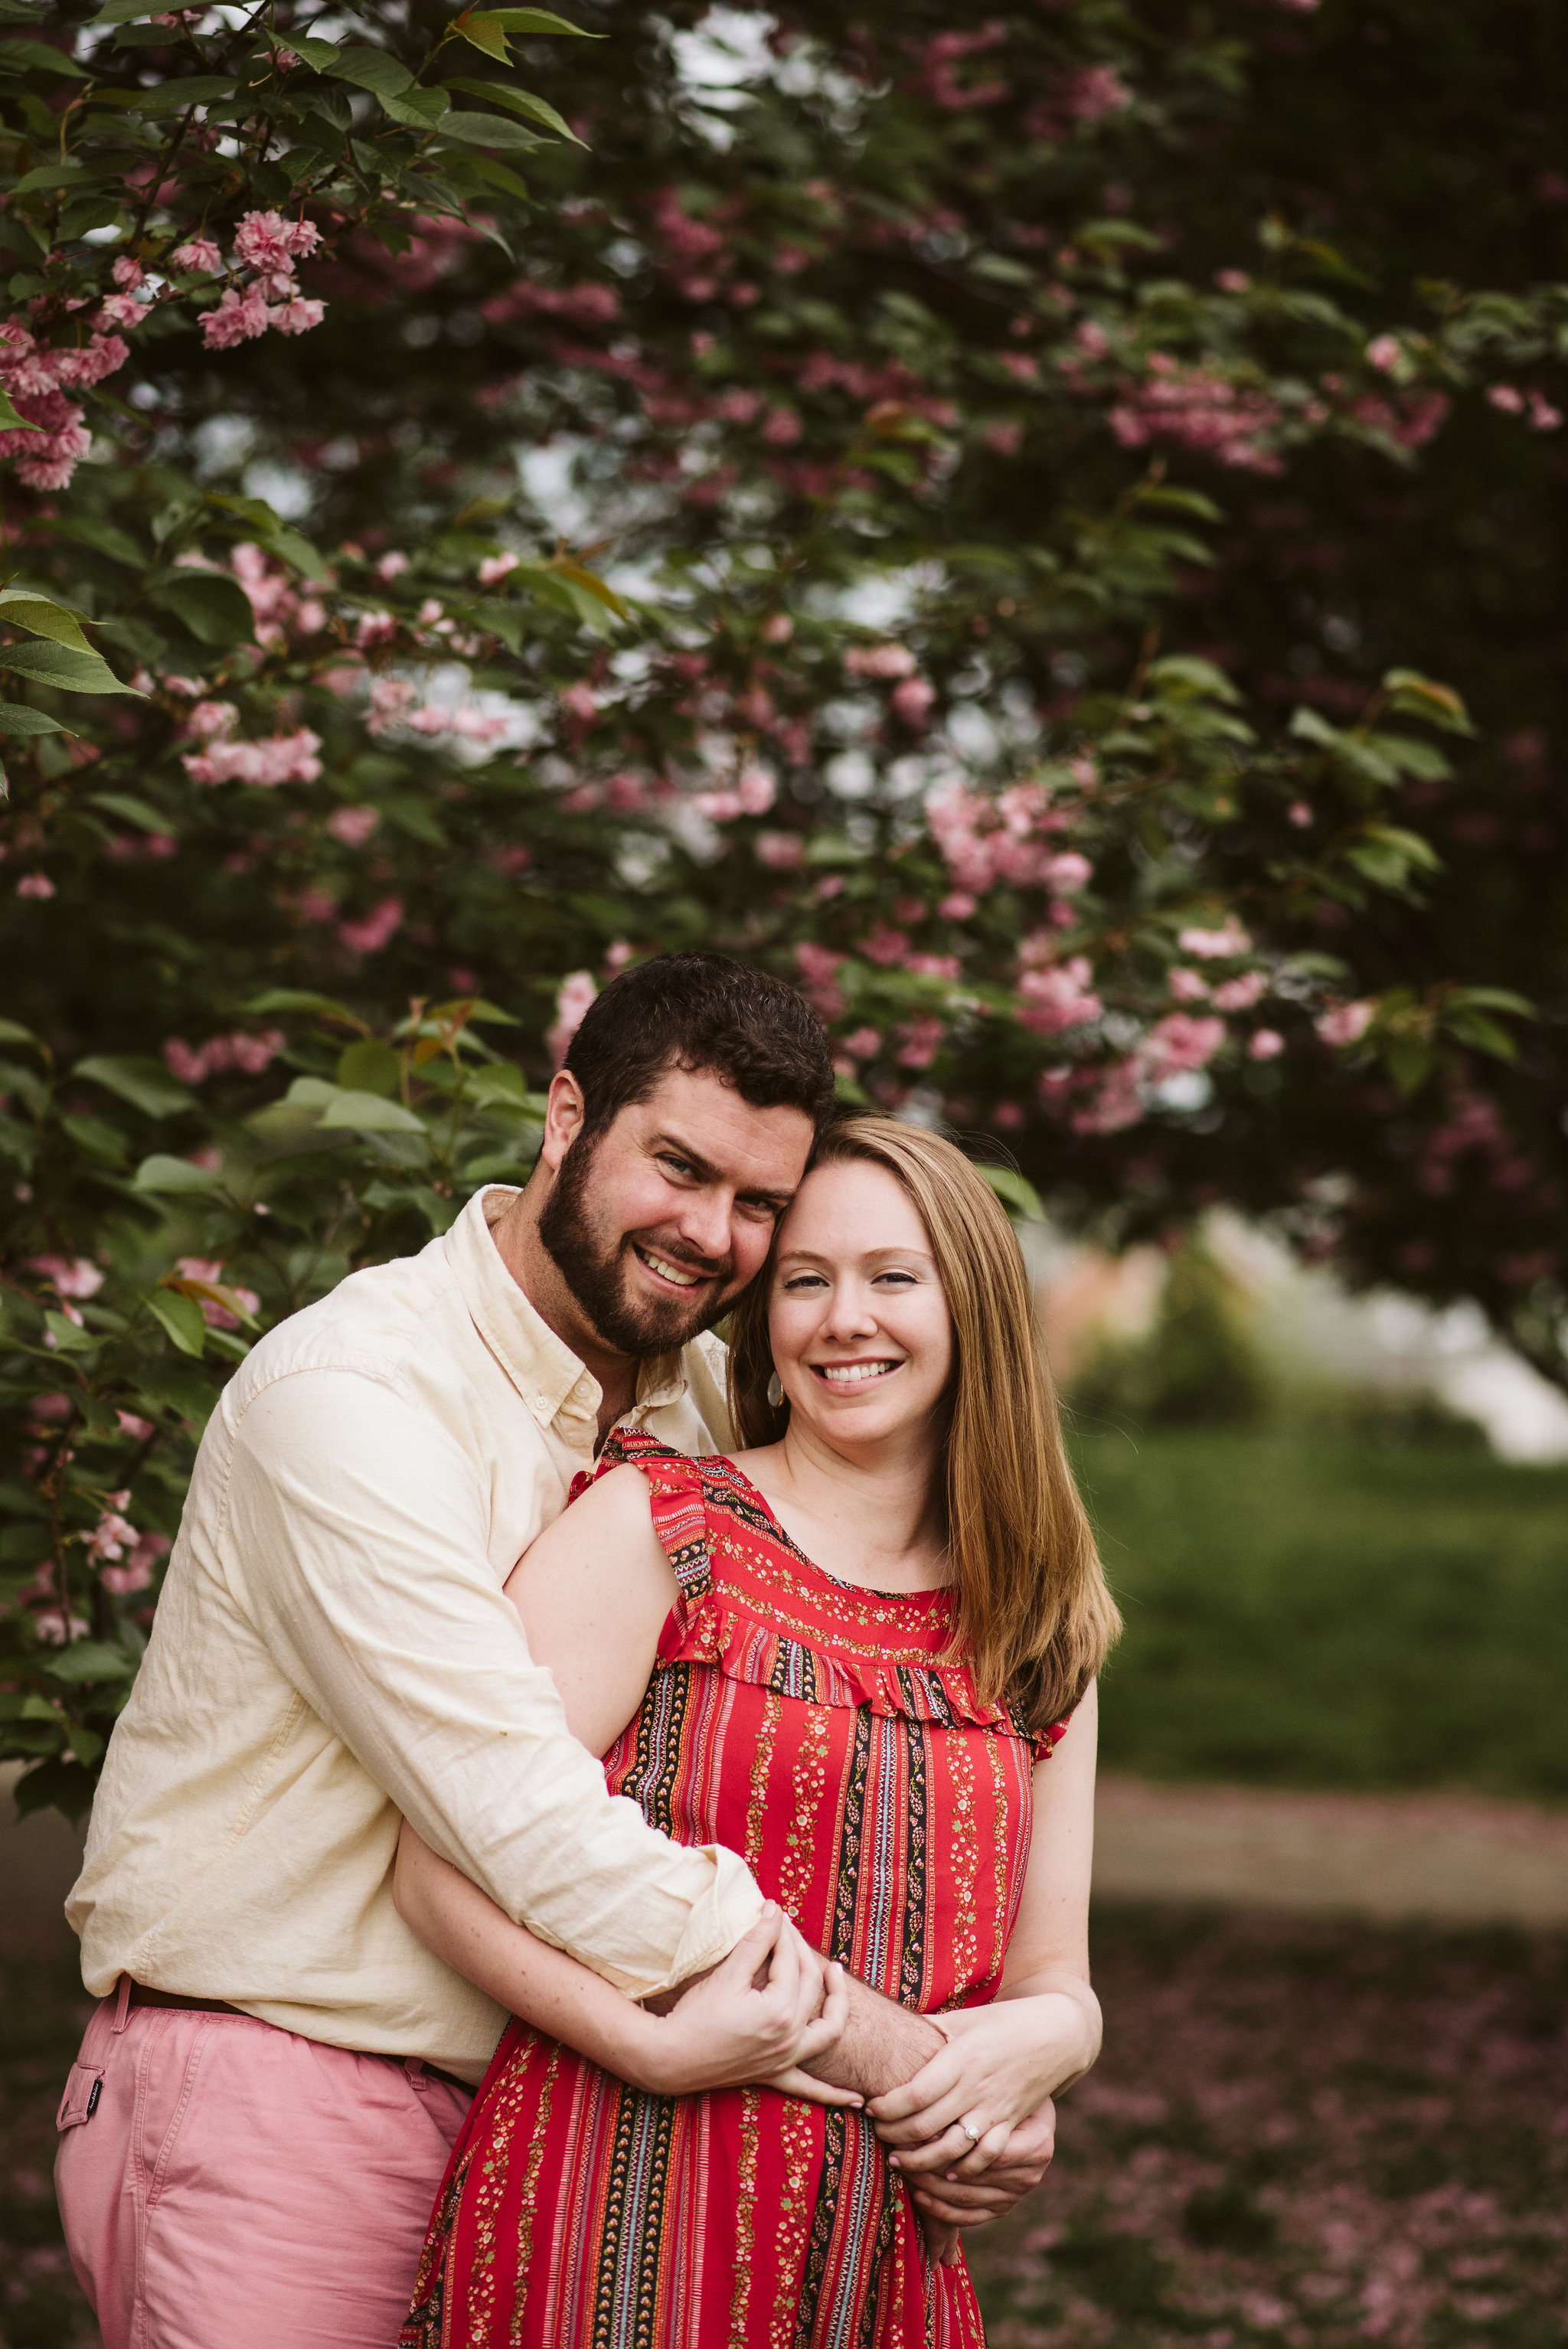 Engagement Photos, Patterson Park, Baltimore, Maryland Wedding Photographer, Casual, Fun, Nature, Portrait of Bride and Groom Under Flowering Tree, Crape Myrtle, Spring